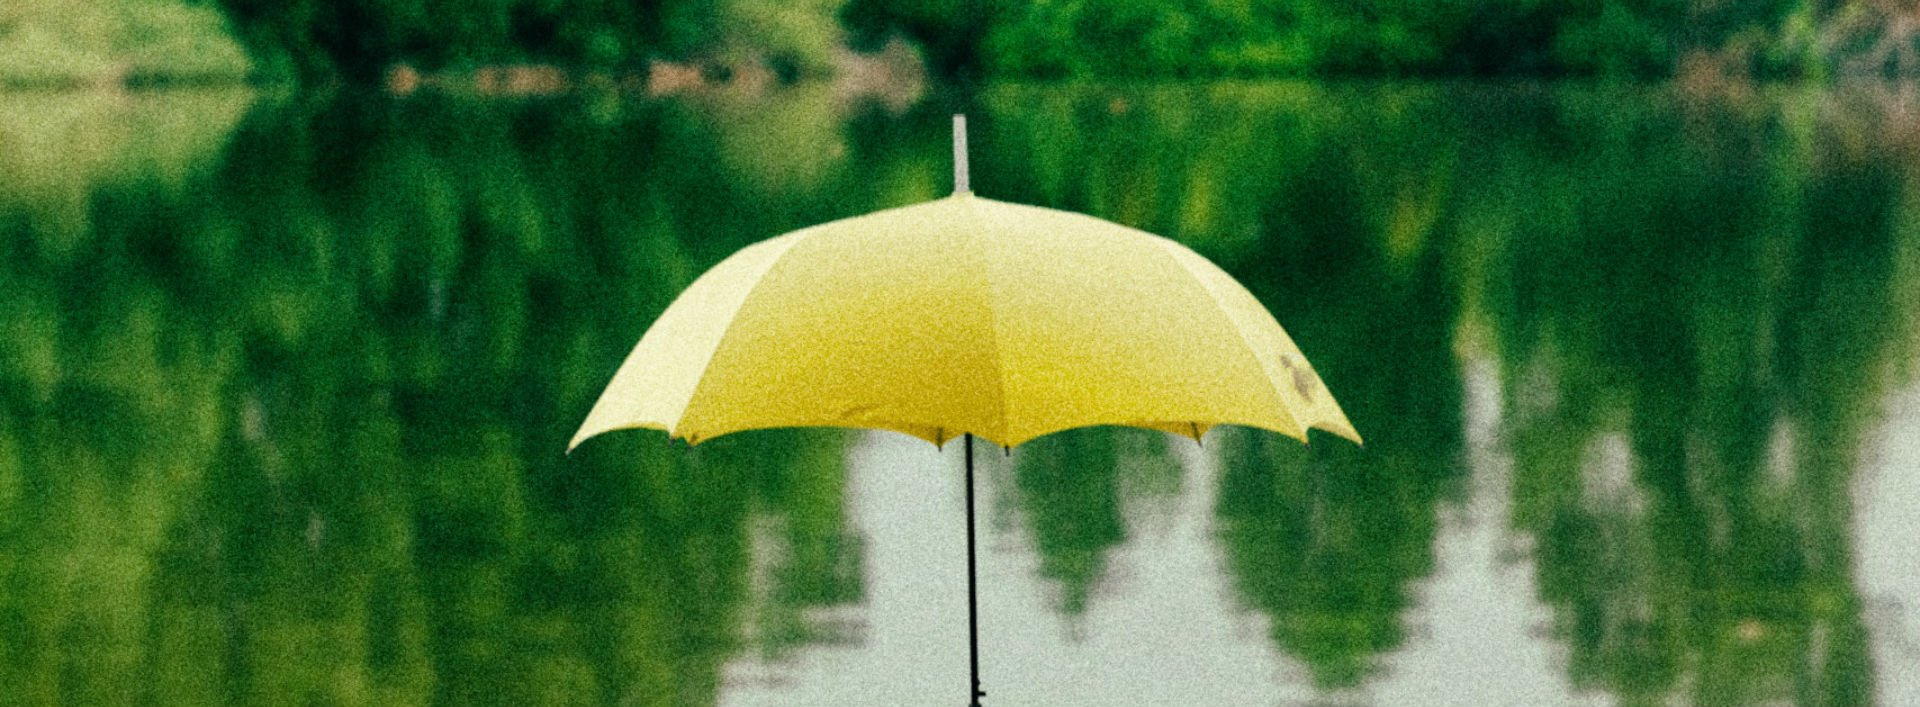 A or an yellow umbrella in a green lake.